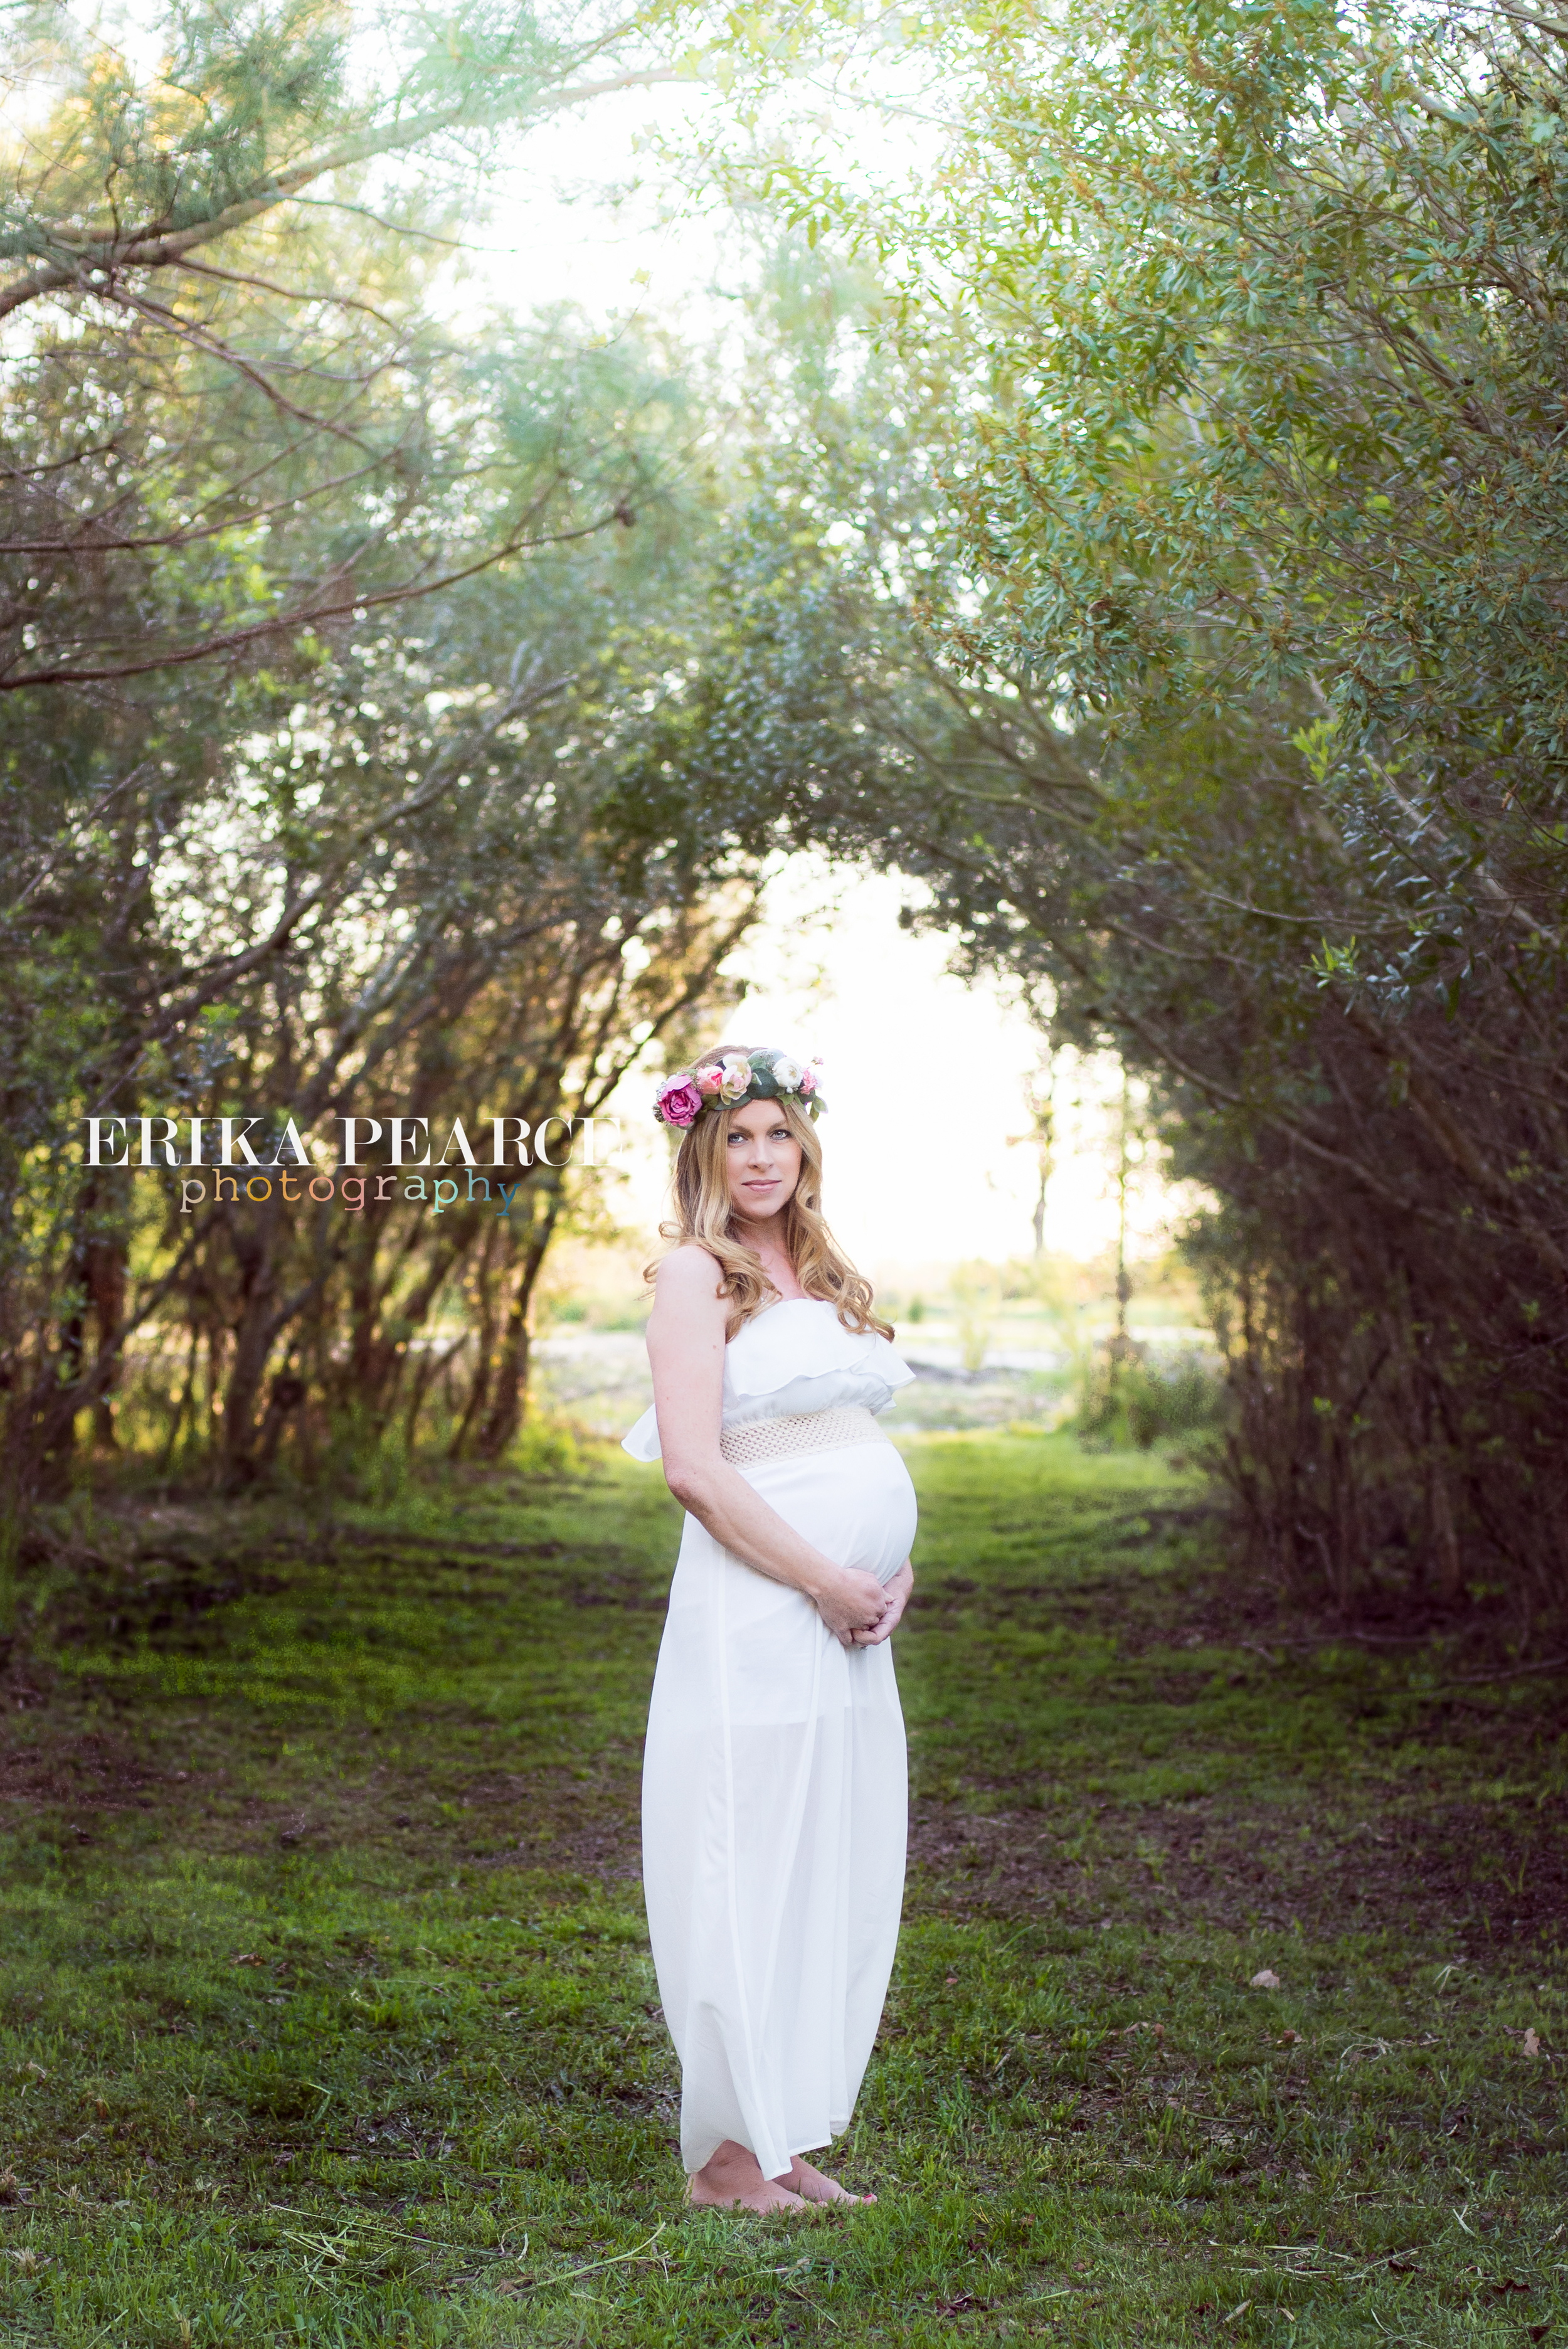 Maternity Photographer | Northshore Covington Mandeville Louisiana